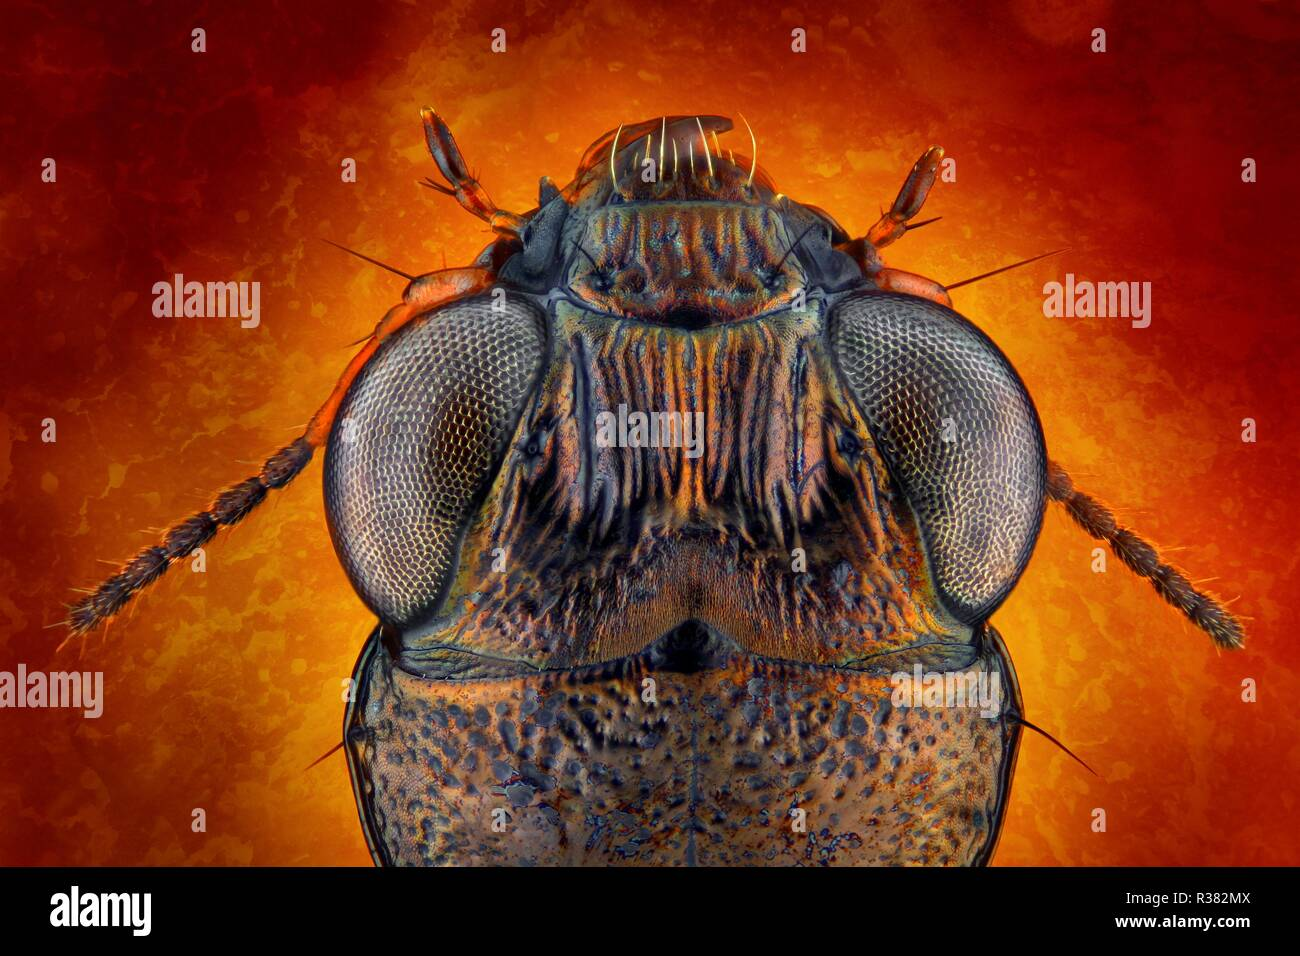 Extremely sharp and detailed study of a Notiophilus ground beetle head taken with a macro lens stacked from many images - with a fancy background. - Stock Image